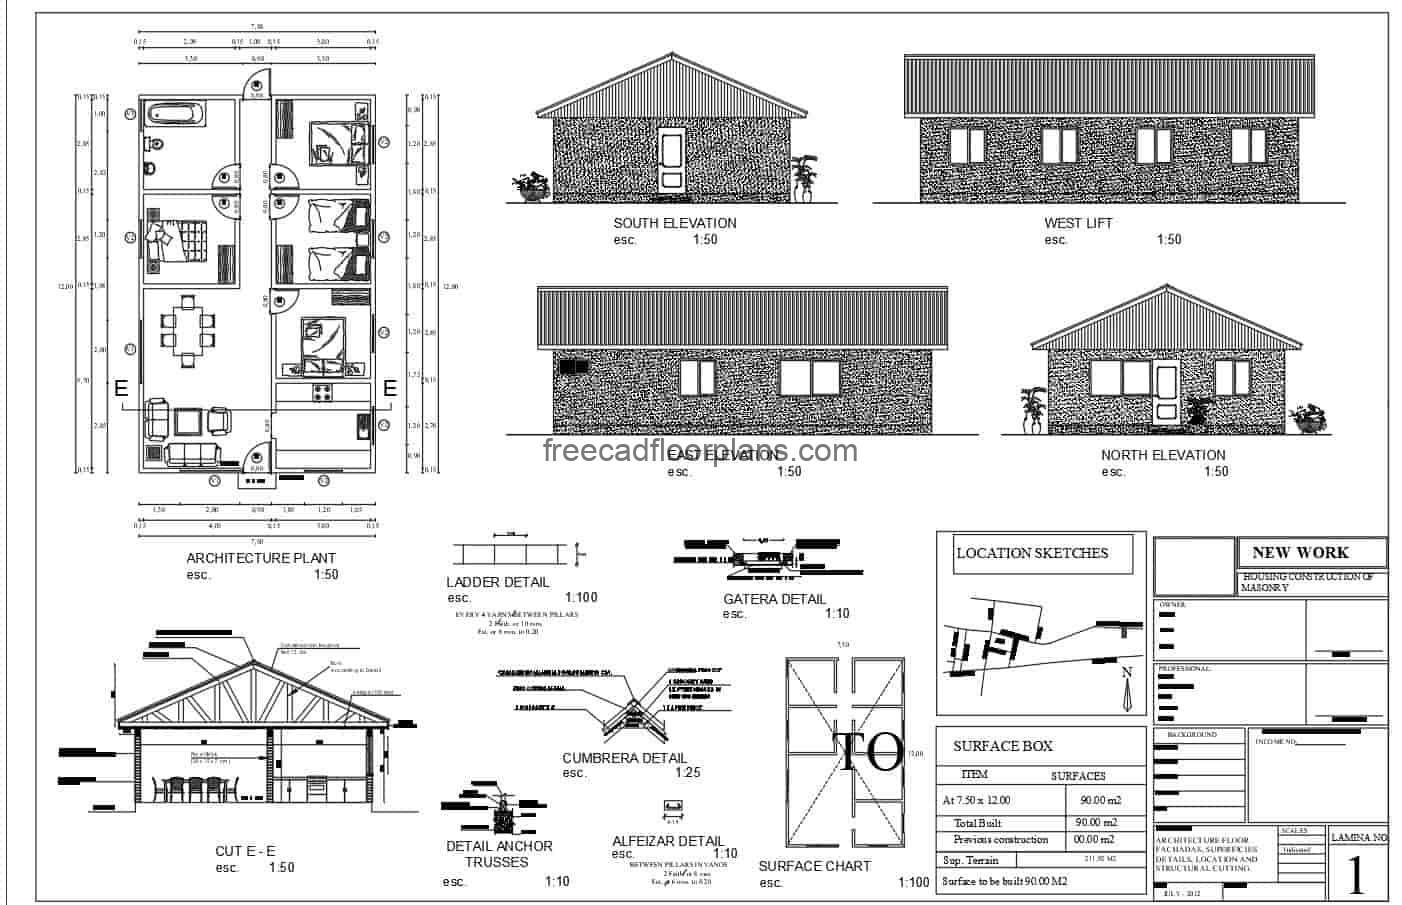 2D architectural project plan of a country house with four bedrooms, living room, kitchen, dining room and shared bathroom. The project contains architectural plans, dimensions, elevations, details of wooden structure, foundation plan. Plans for free download in DWG format from Autocad.